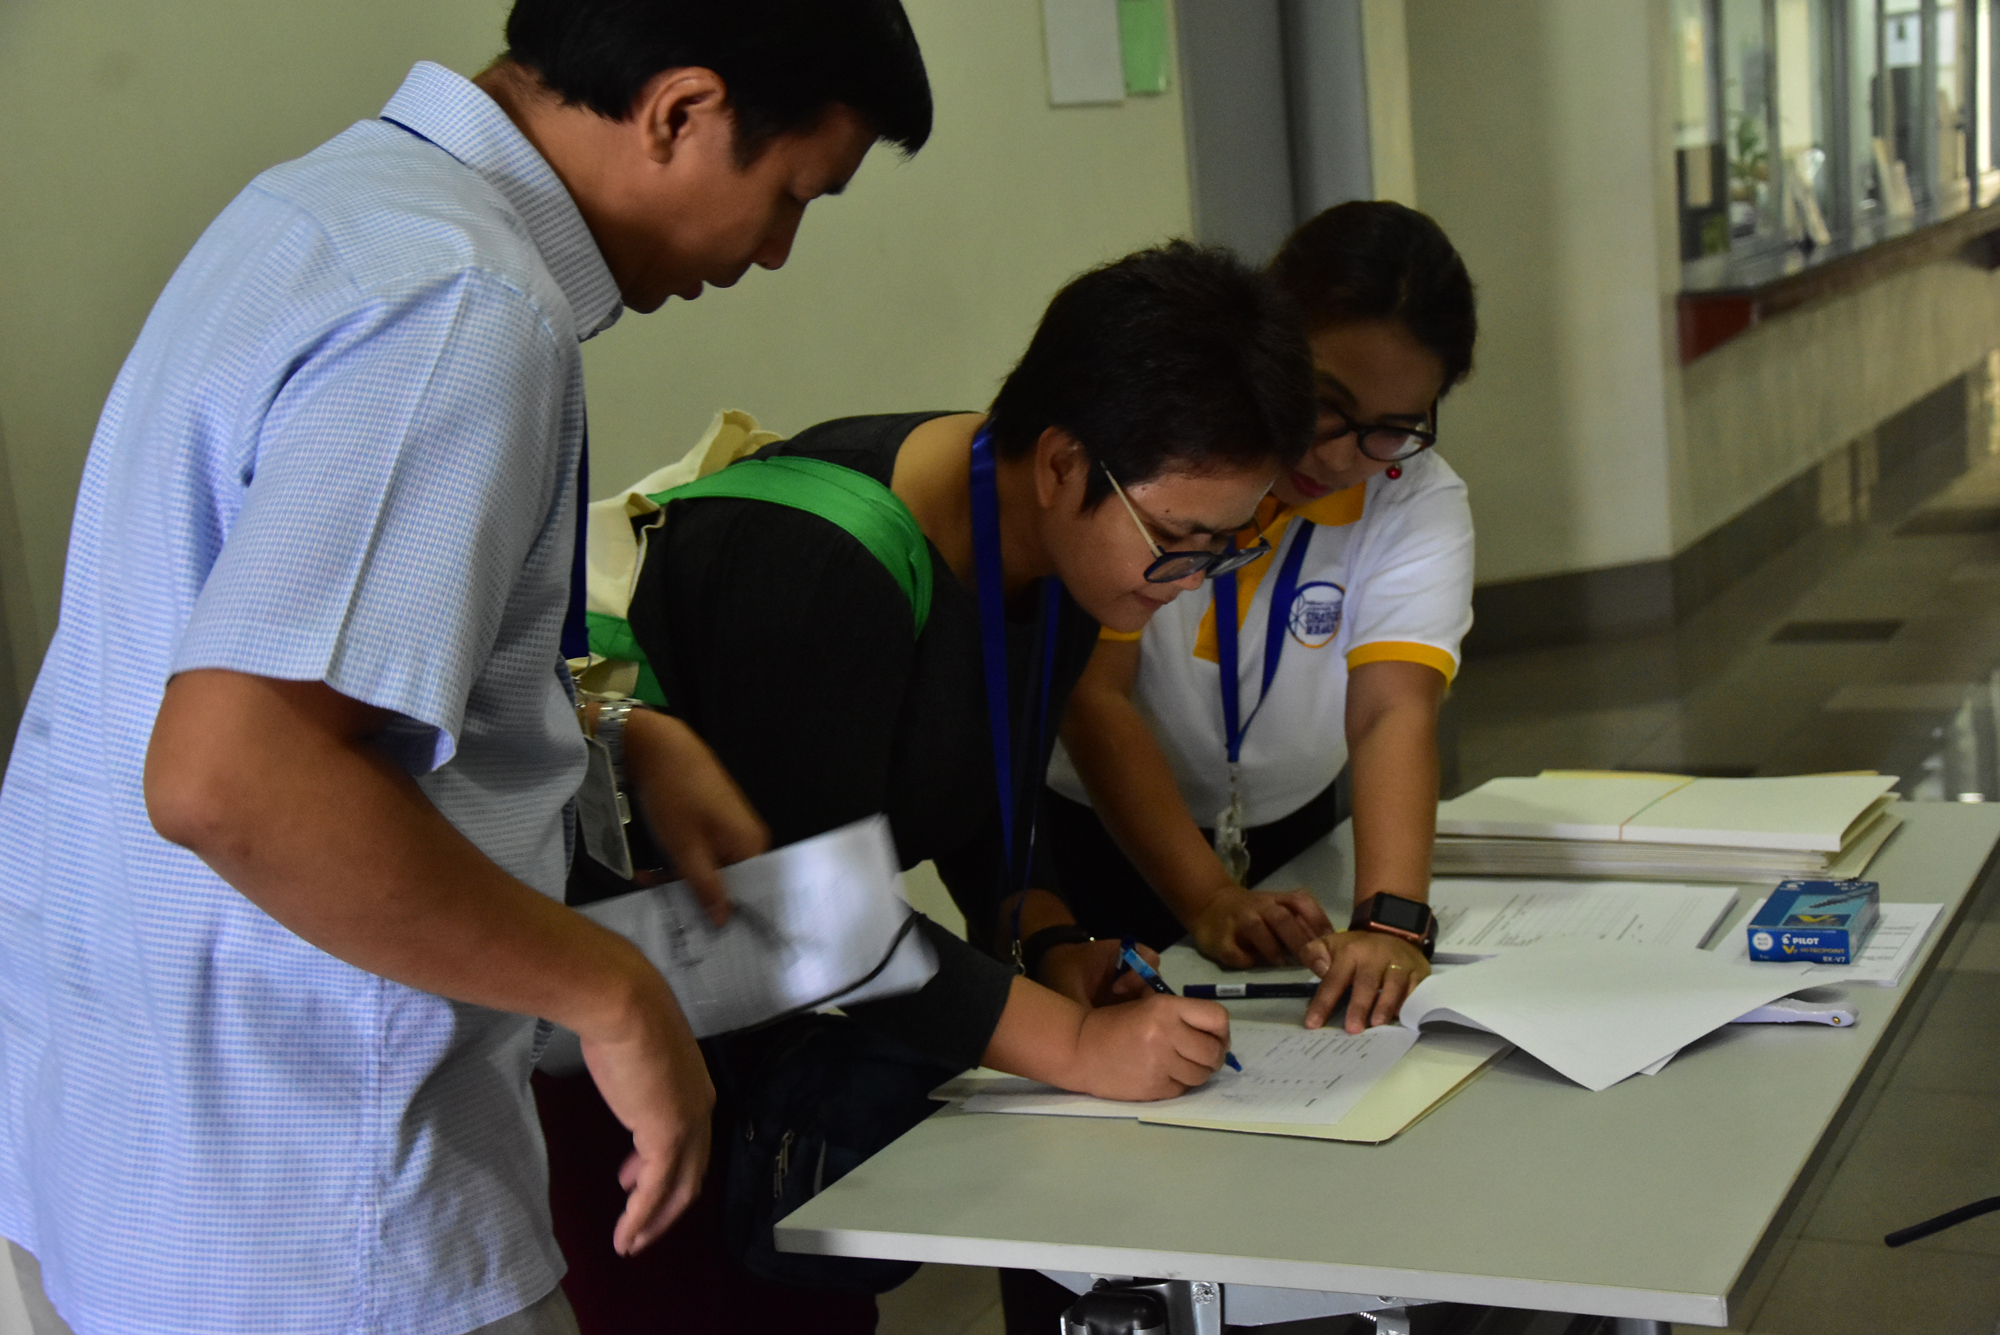 Ms. Villanueva, CSR Program Coordinator assisting during registration